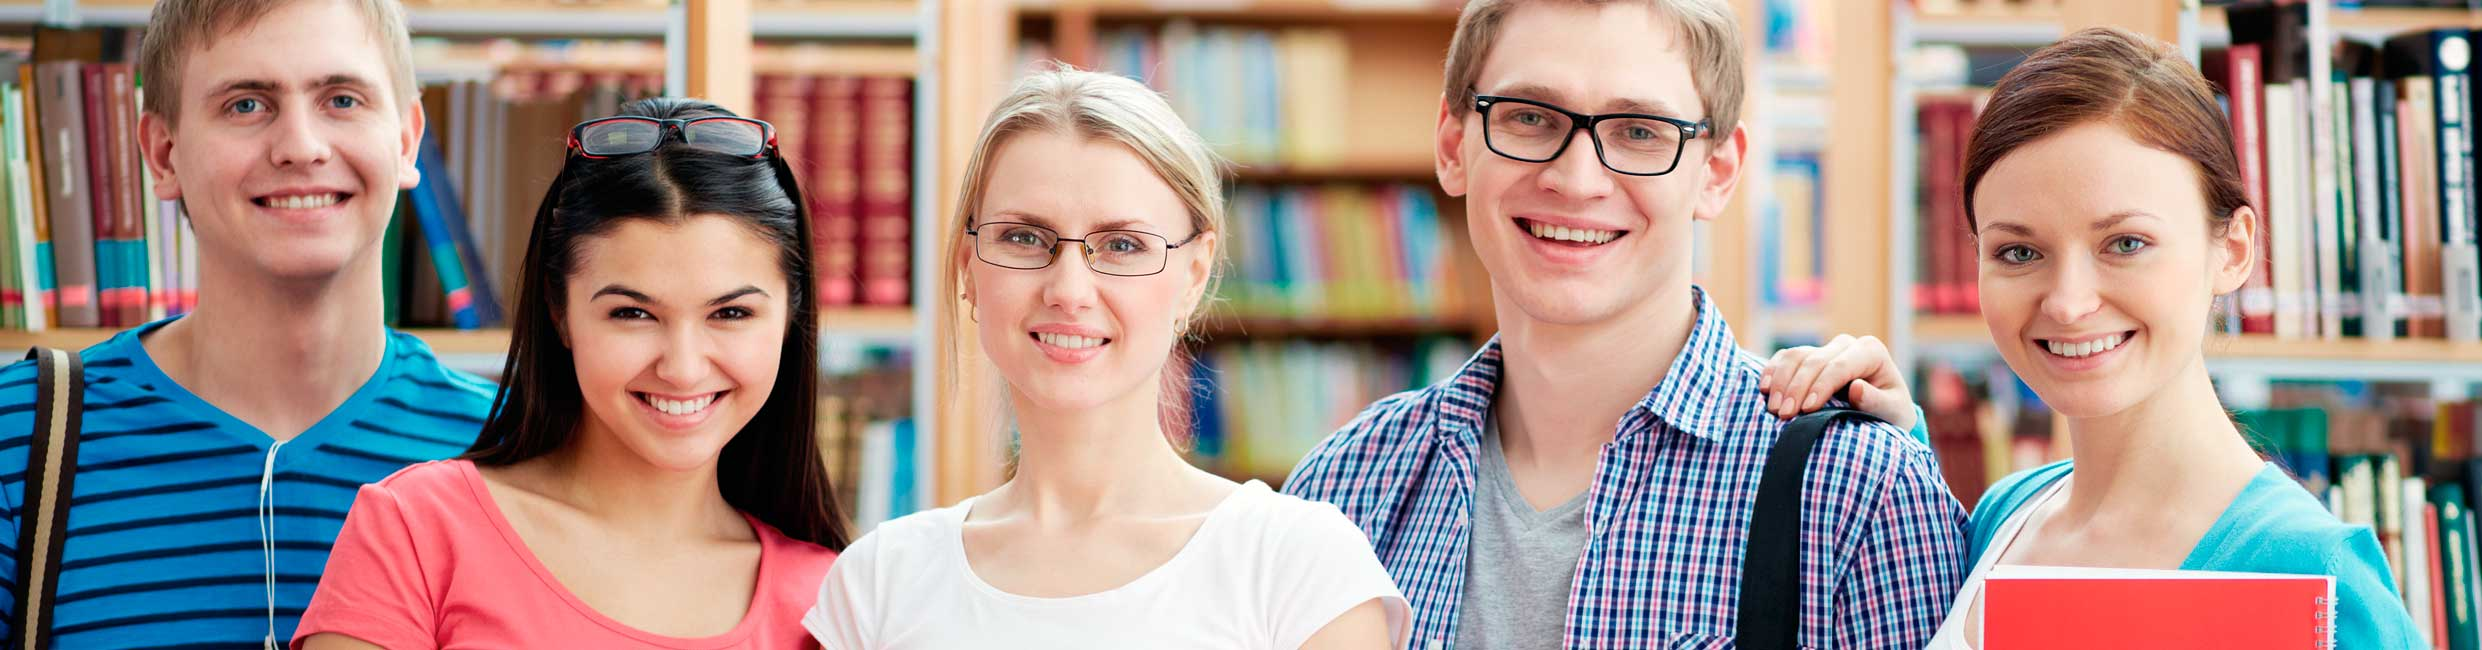 How to support young people - and yourself - through the stress of starting university life